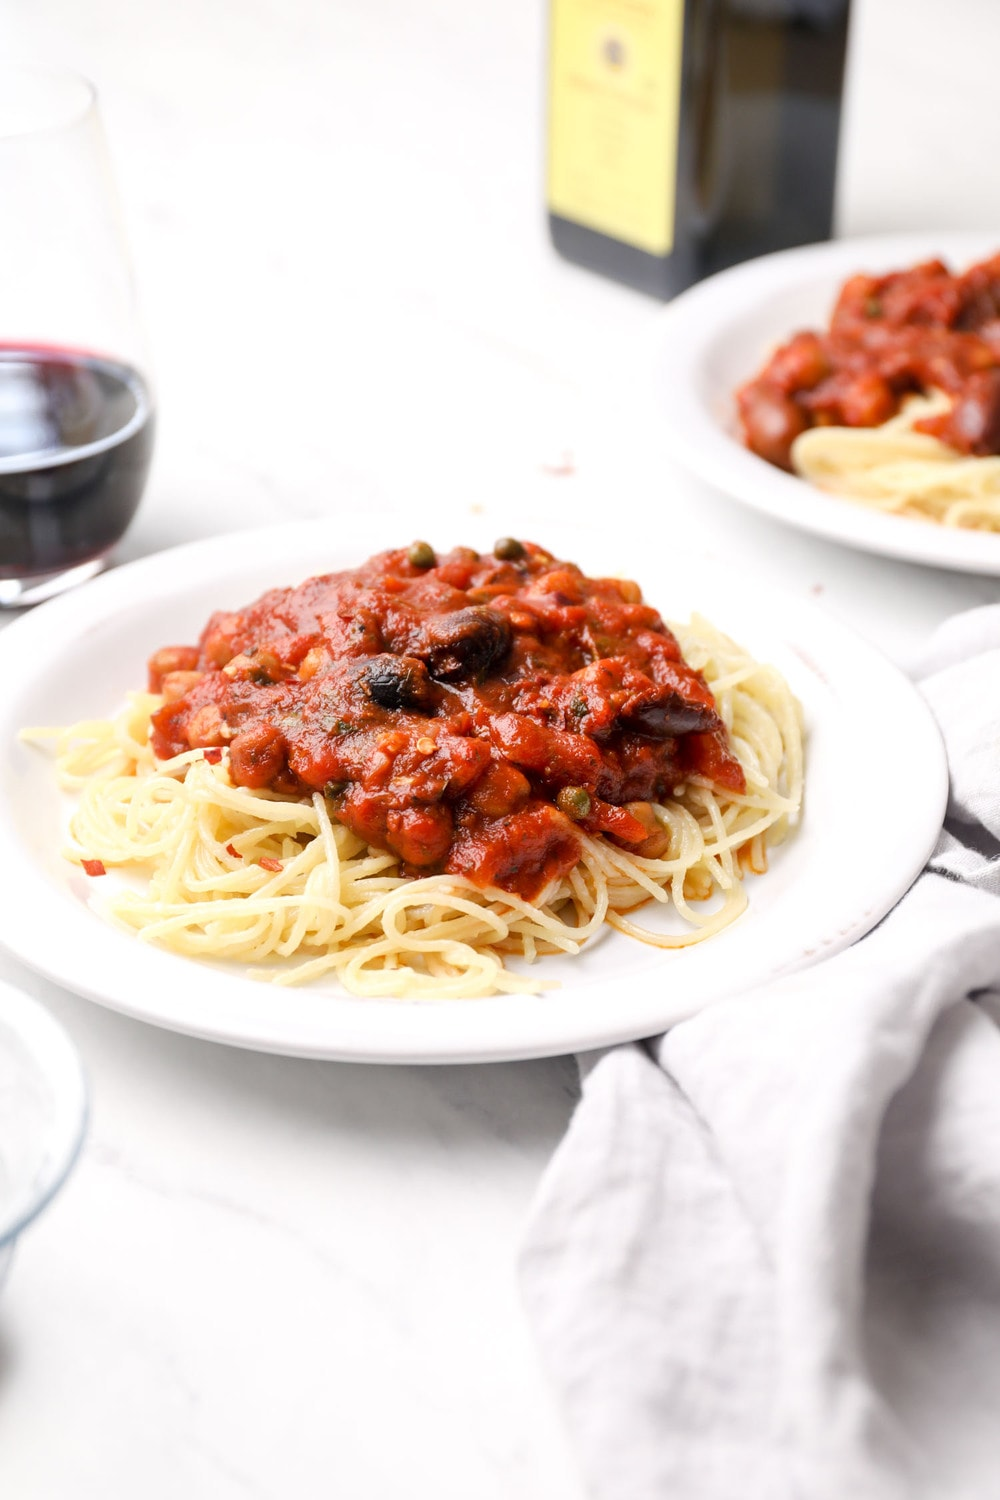 A plate of gluten free pasta with chickpea puttanesca sauce.